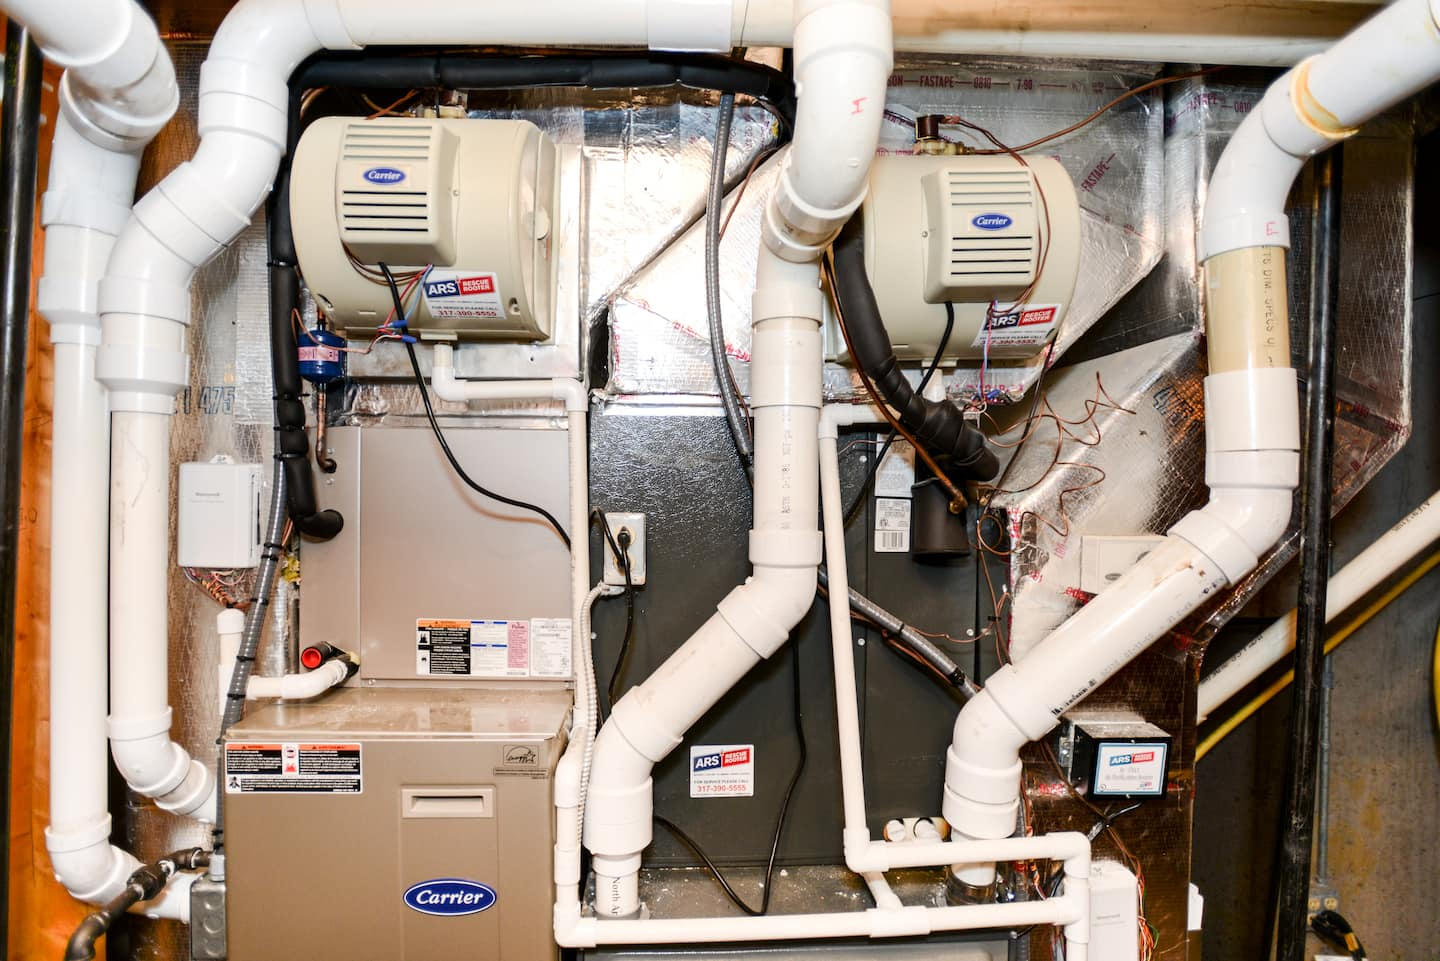 Garage Heater Cost To Run How Much Does It Cost To Install A New Furnace Angie S List